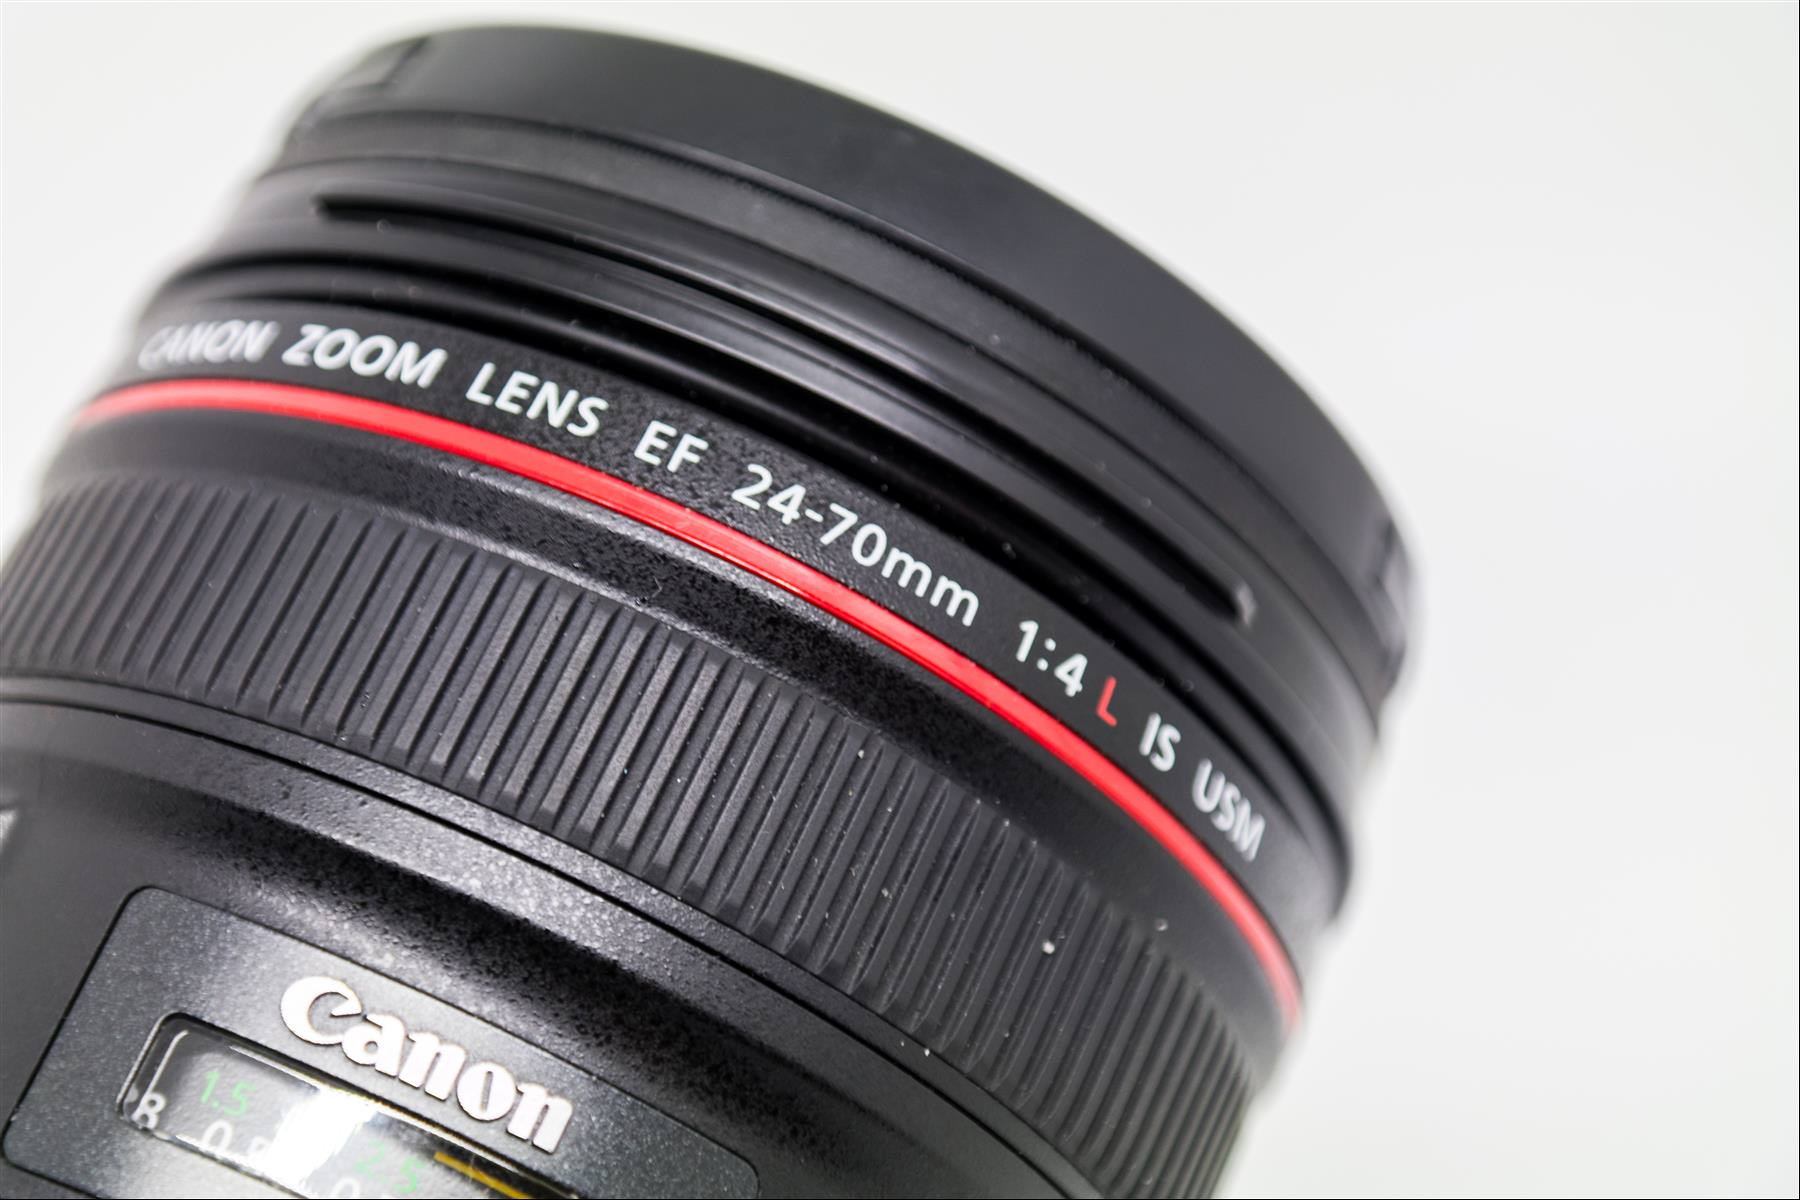 Canon EF 24-70mm F4L IS